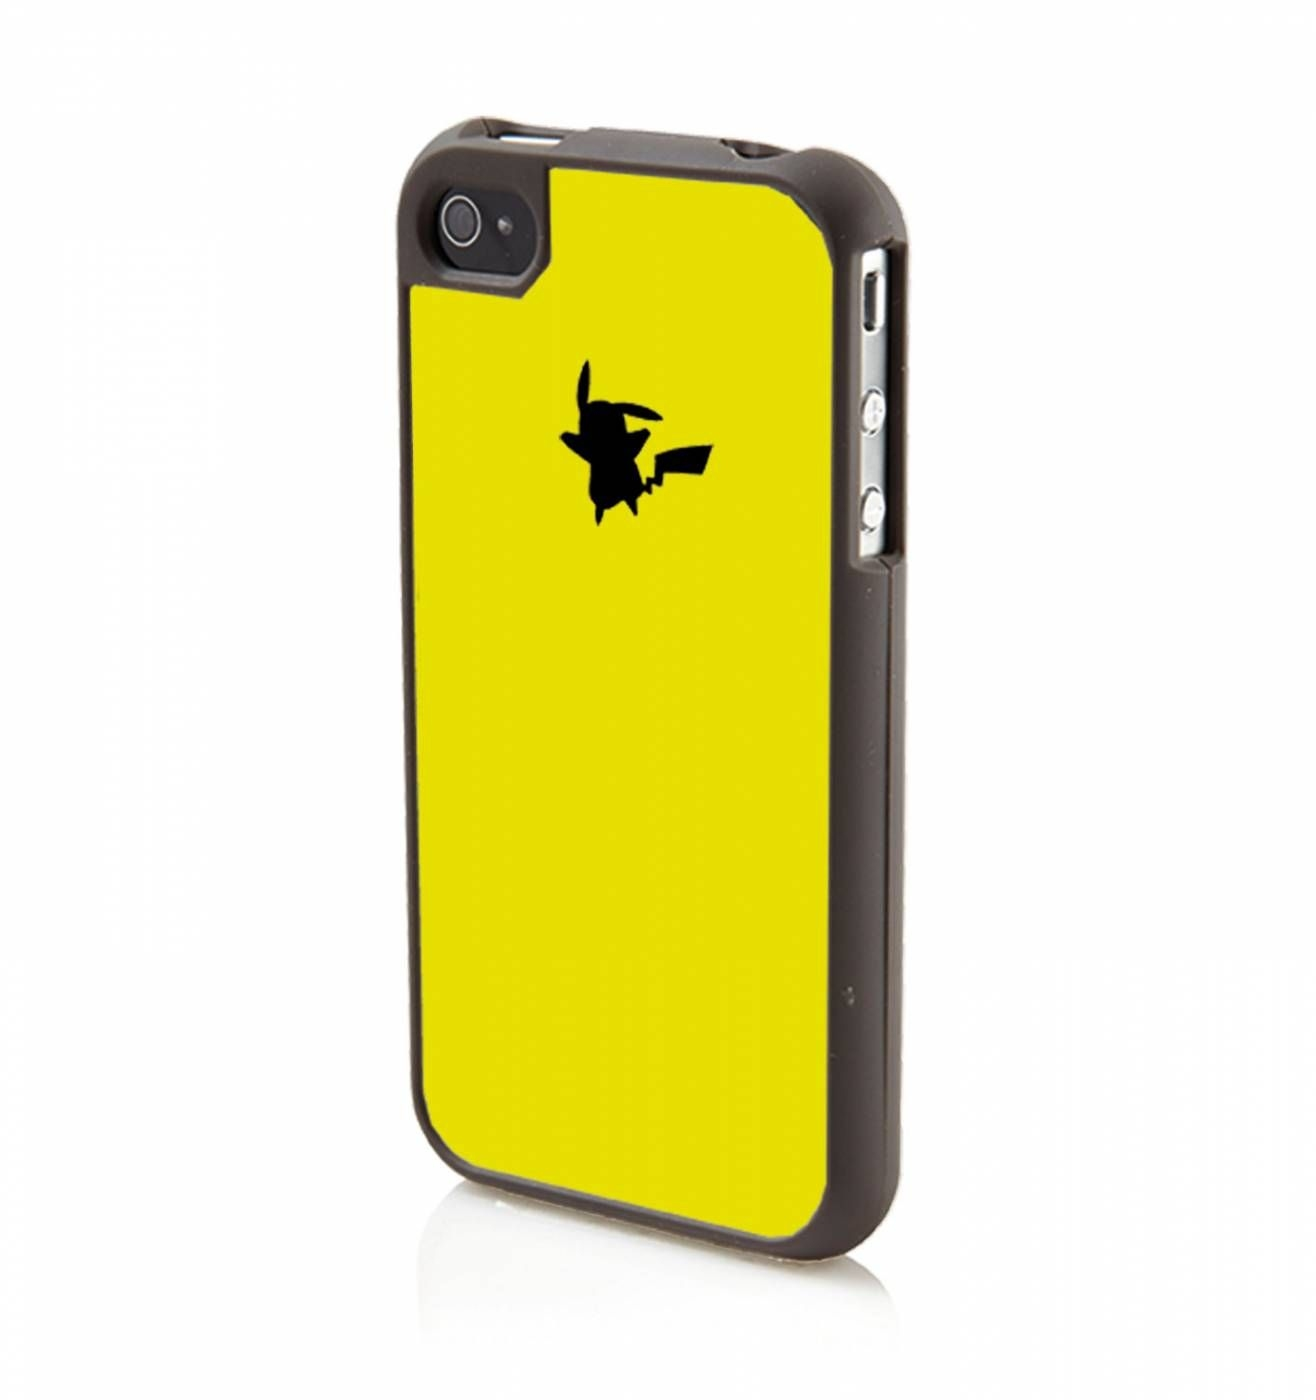 Pikachu Yellow iPhone 4/4s phone case